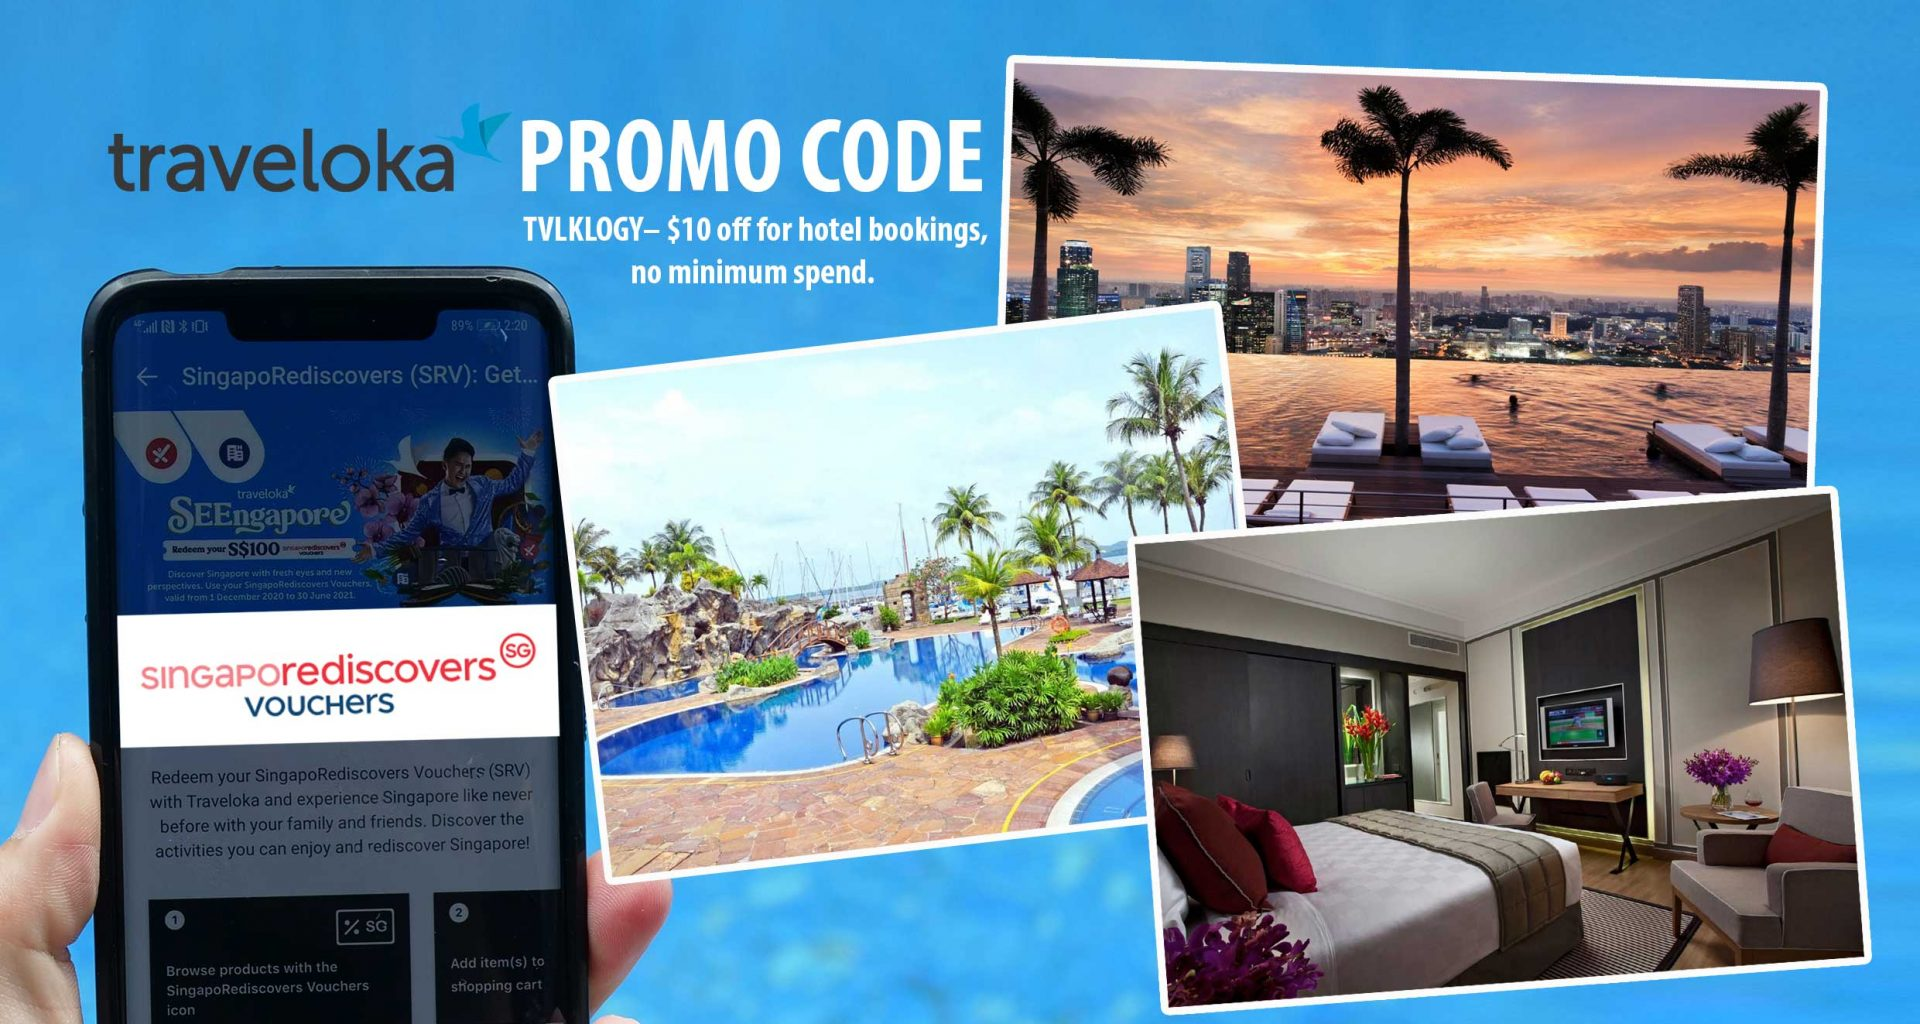 [Promo Codes] Three Unique Staycations You Don't Want to Miss - Alvinology